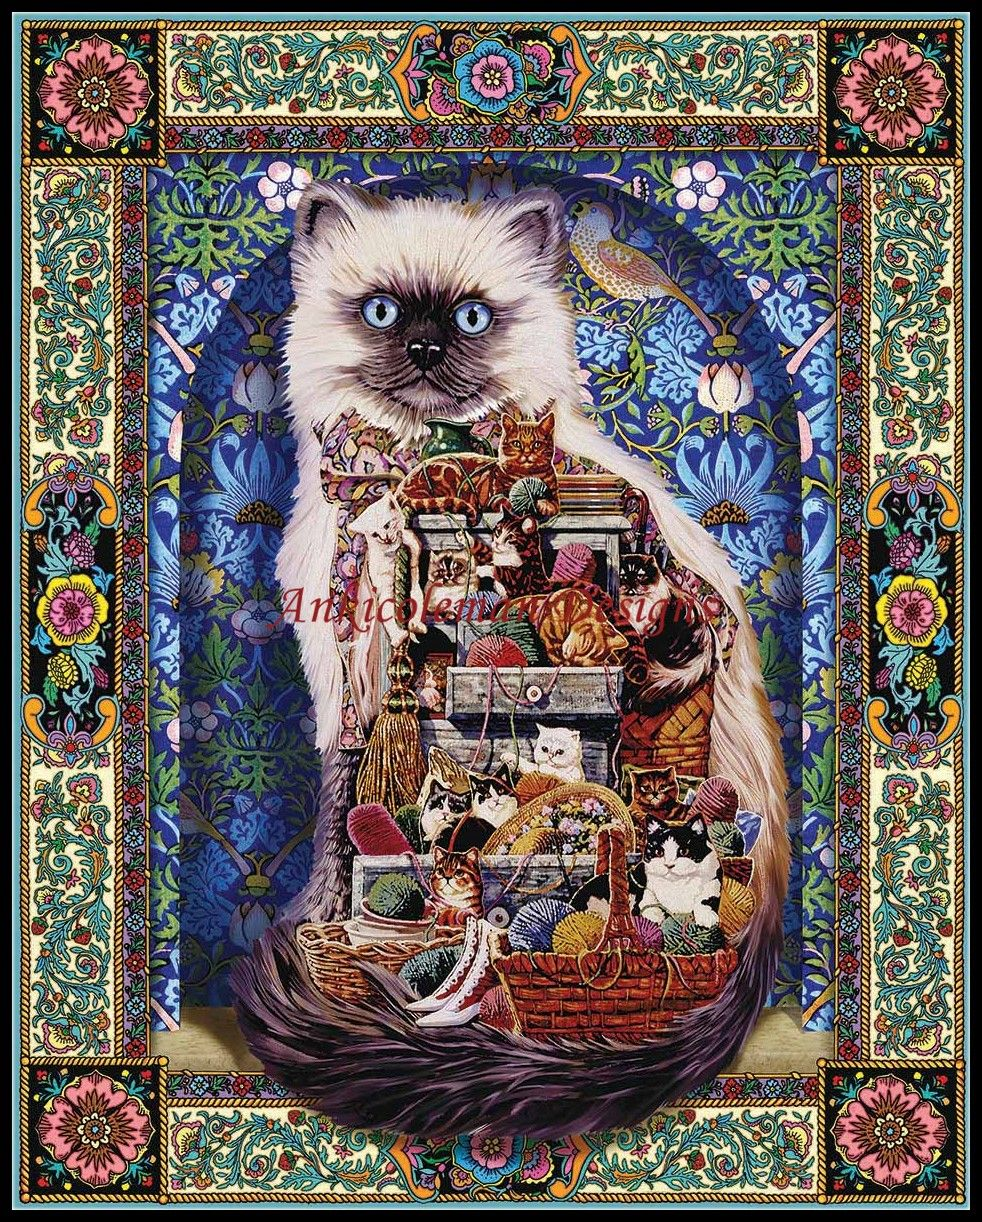 Needlework for embroidery DIY French DMC High Quality - Counted Cross Stitch Kits 14 ct Oil painting - Cats Galore